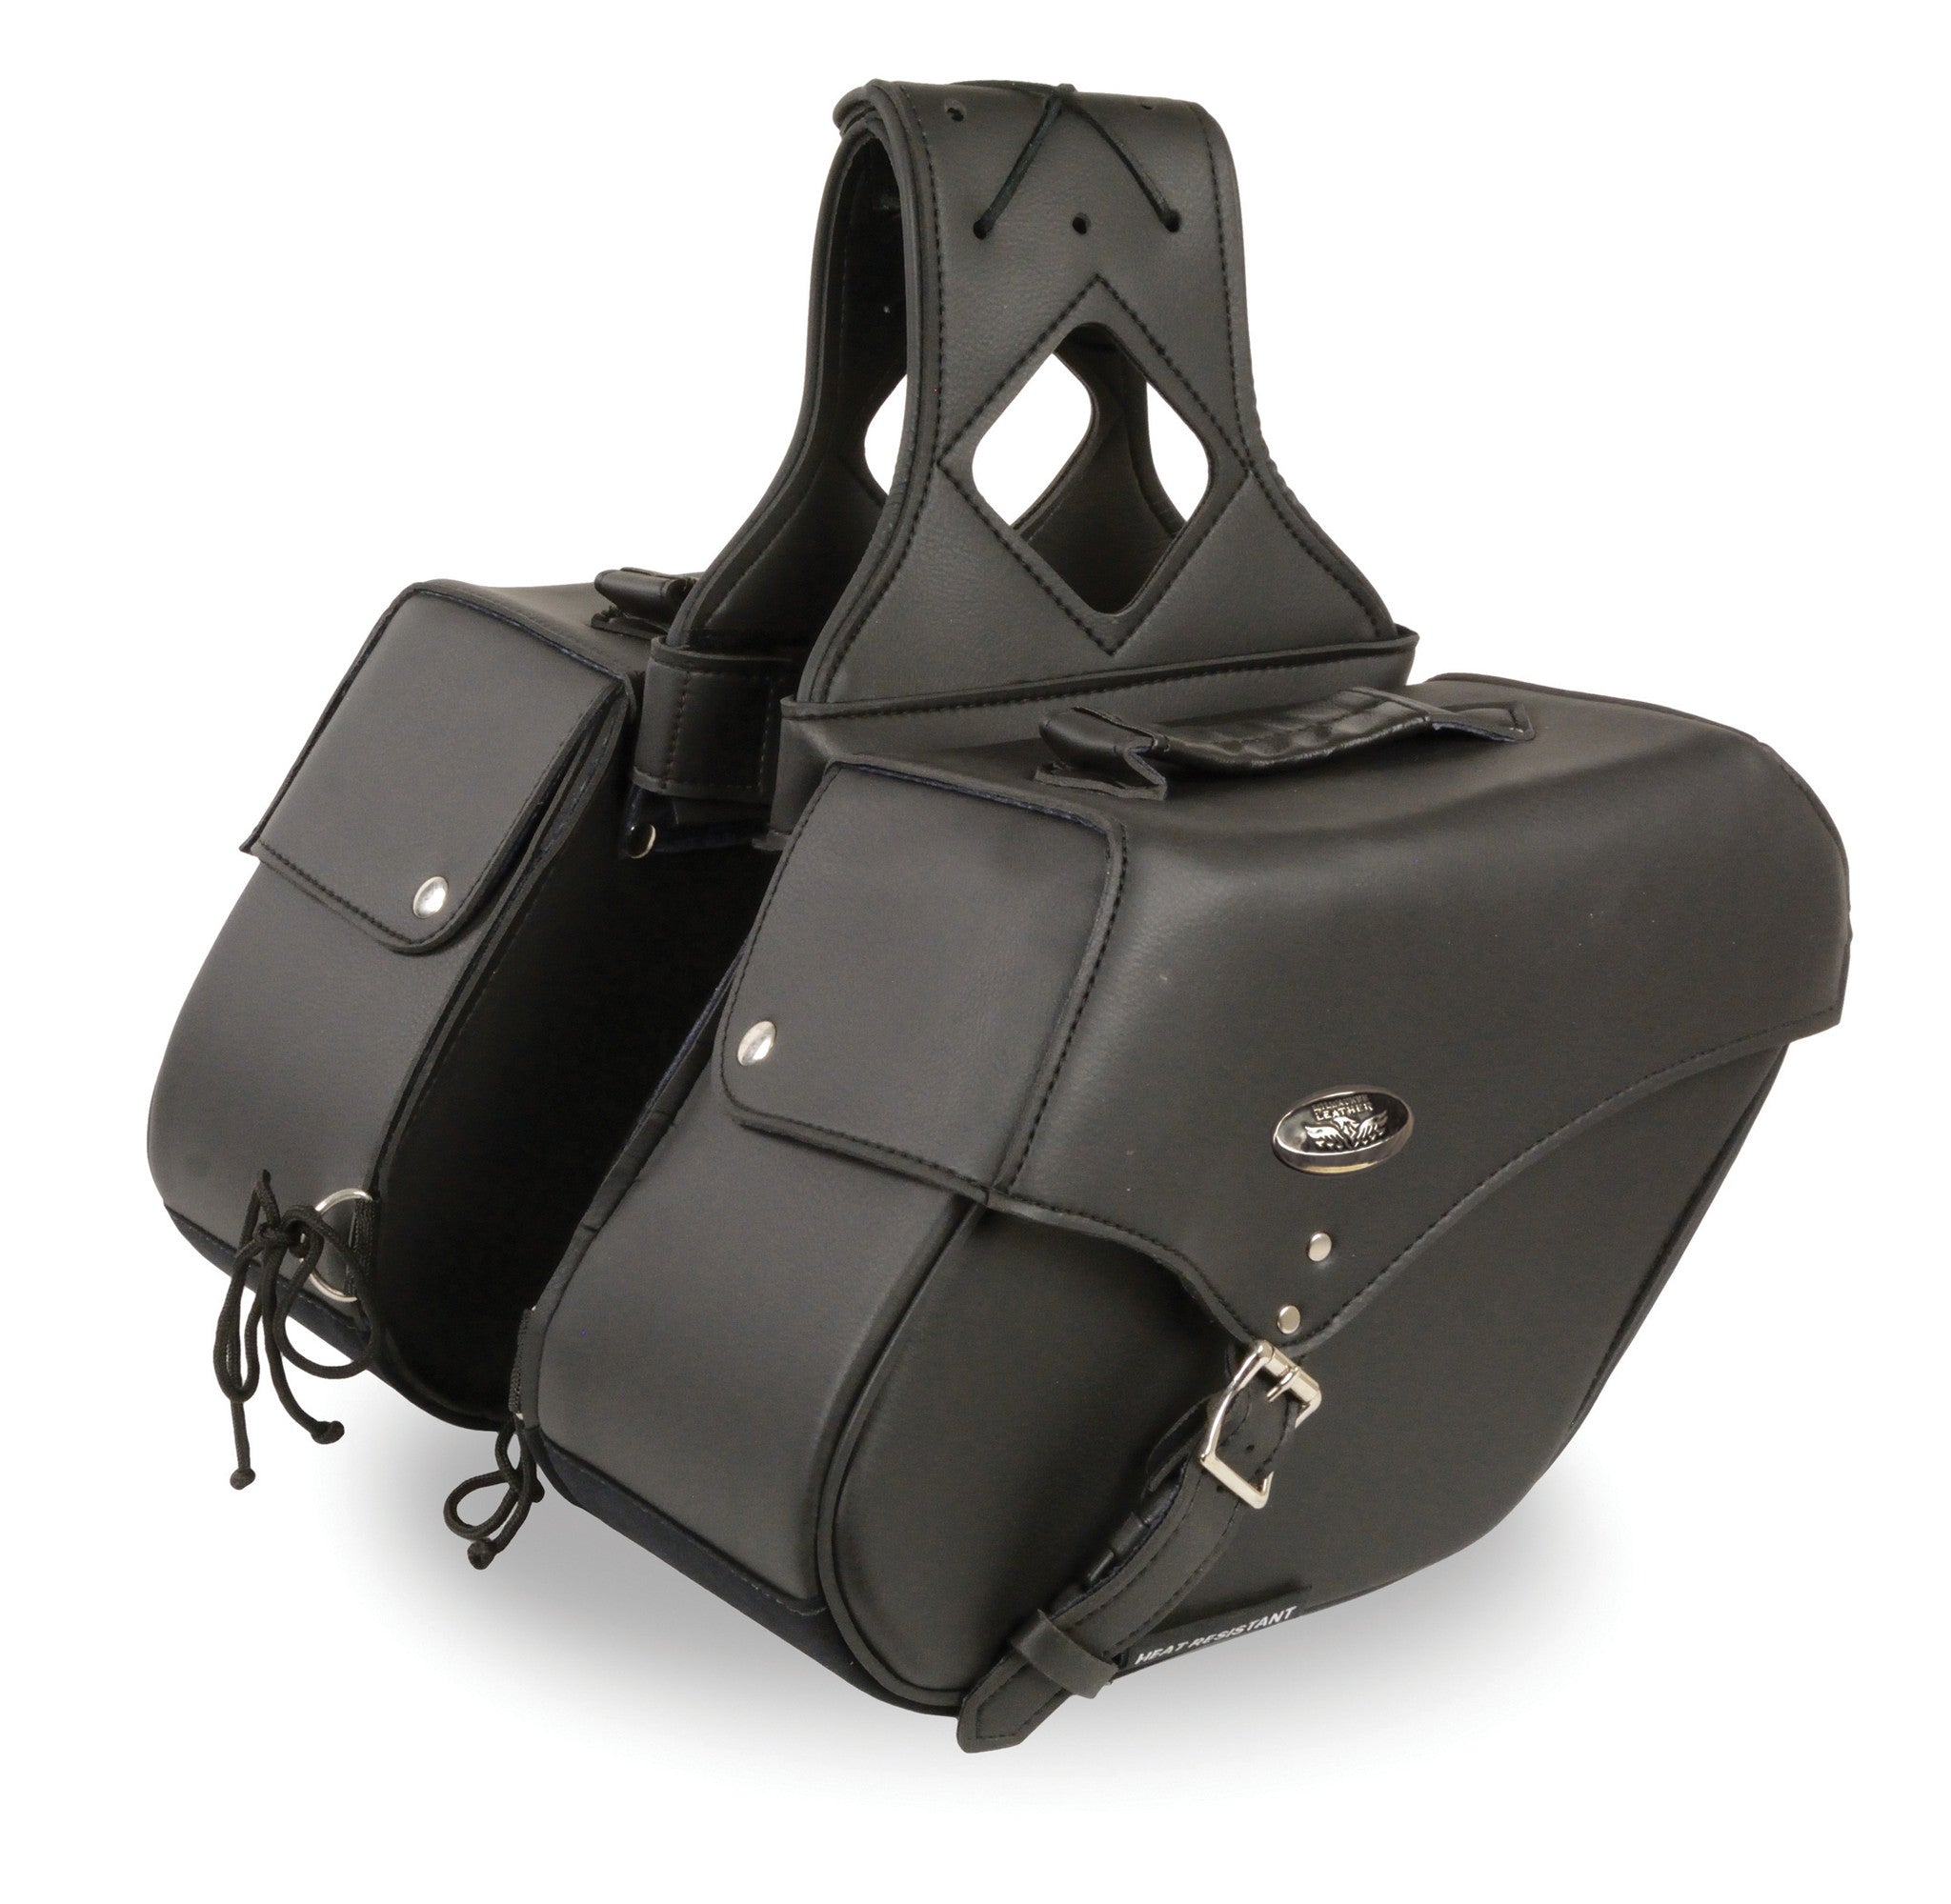 TWO PIECE WATERPROOF SADDLEBAG SINGLE STRAP REFLECTIVE PIPING